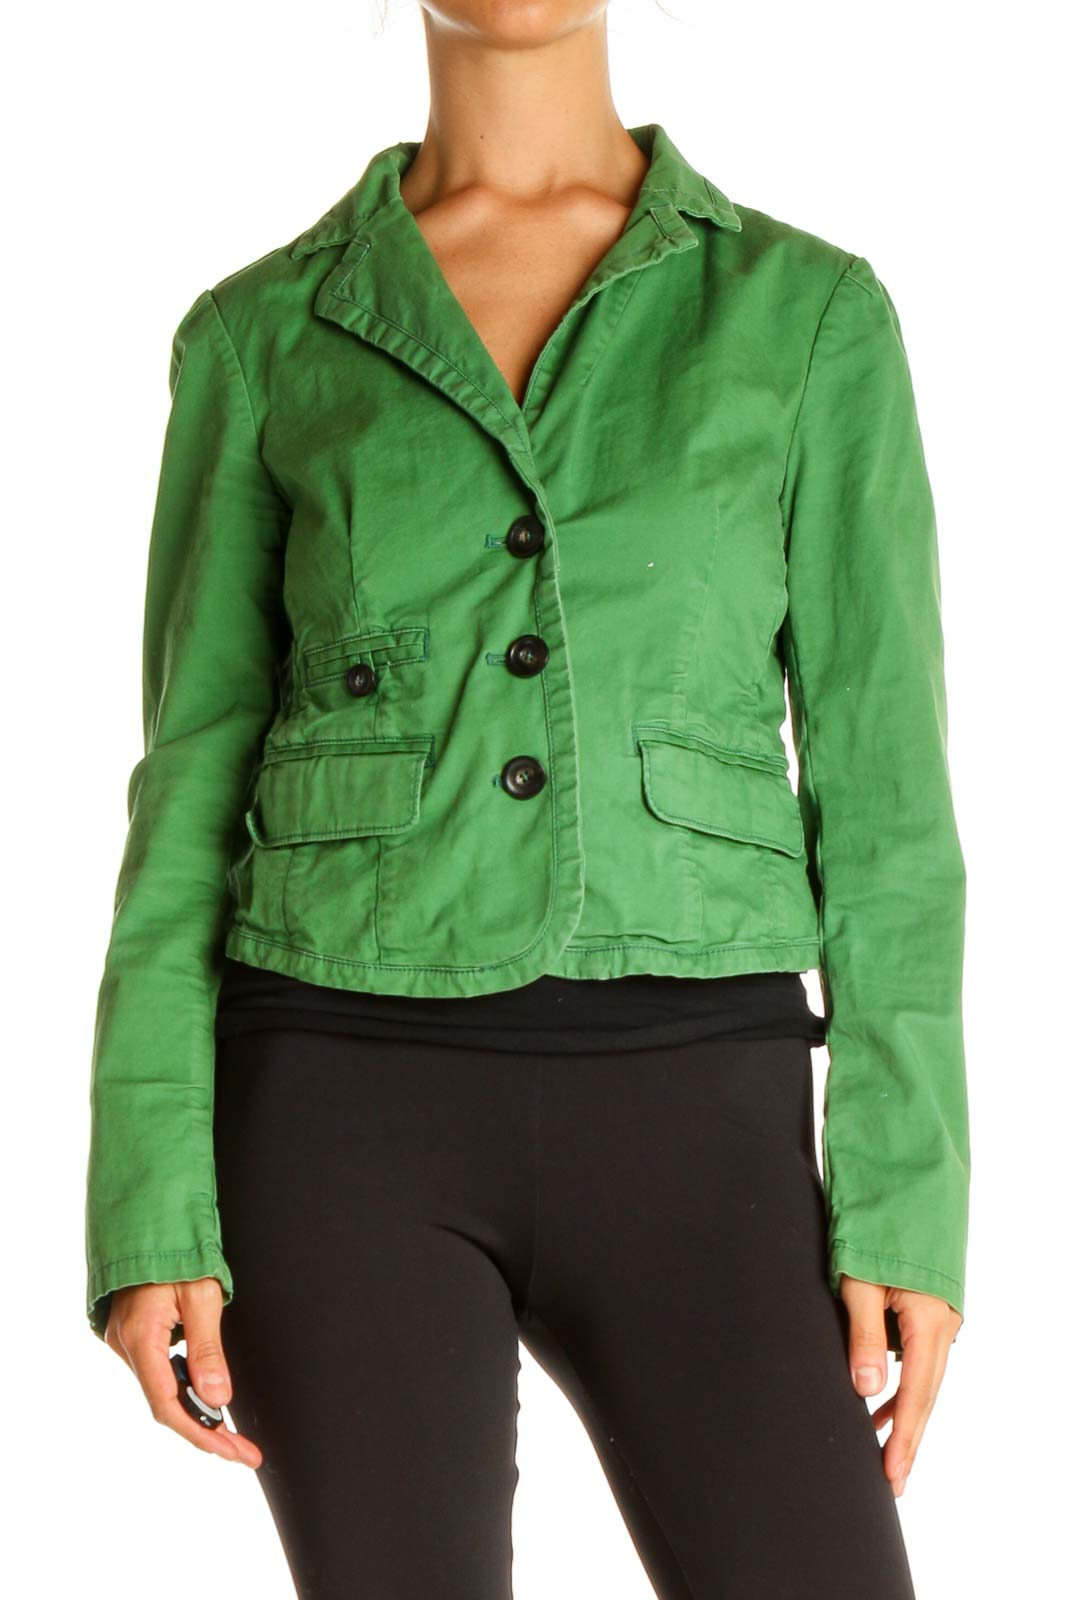 Green Jacket Front